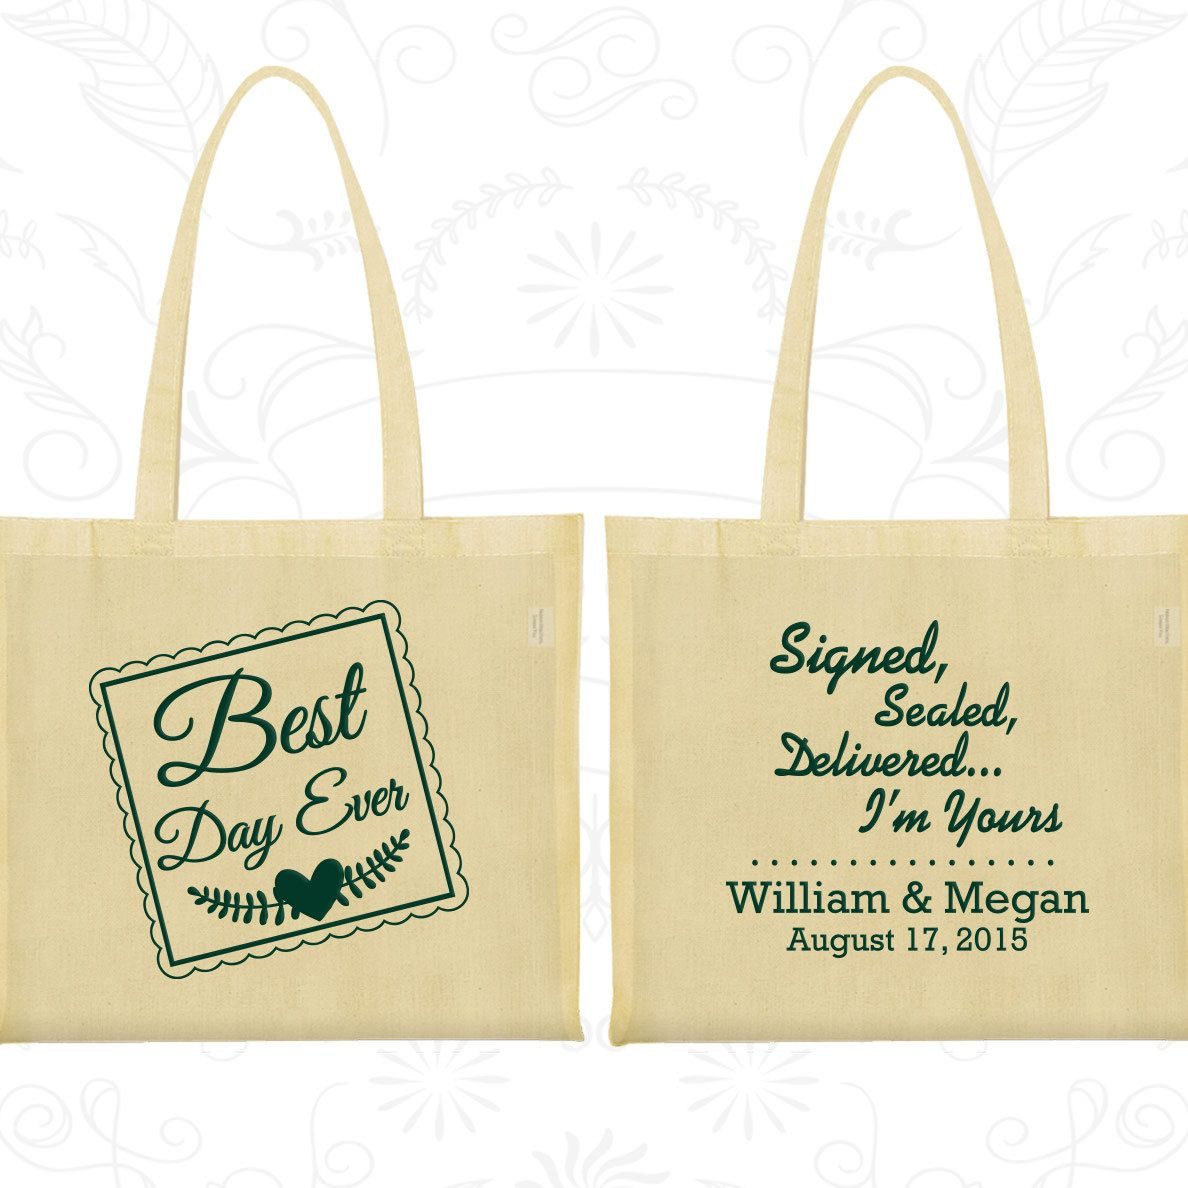 Best Day Ever Wedding Bags, Signed, Sealed, Delivered, I am Yours, Cheap Cotton Canvas Tote, Romantic Wedding, Personalized Bags (591)